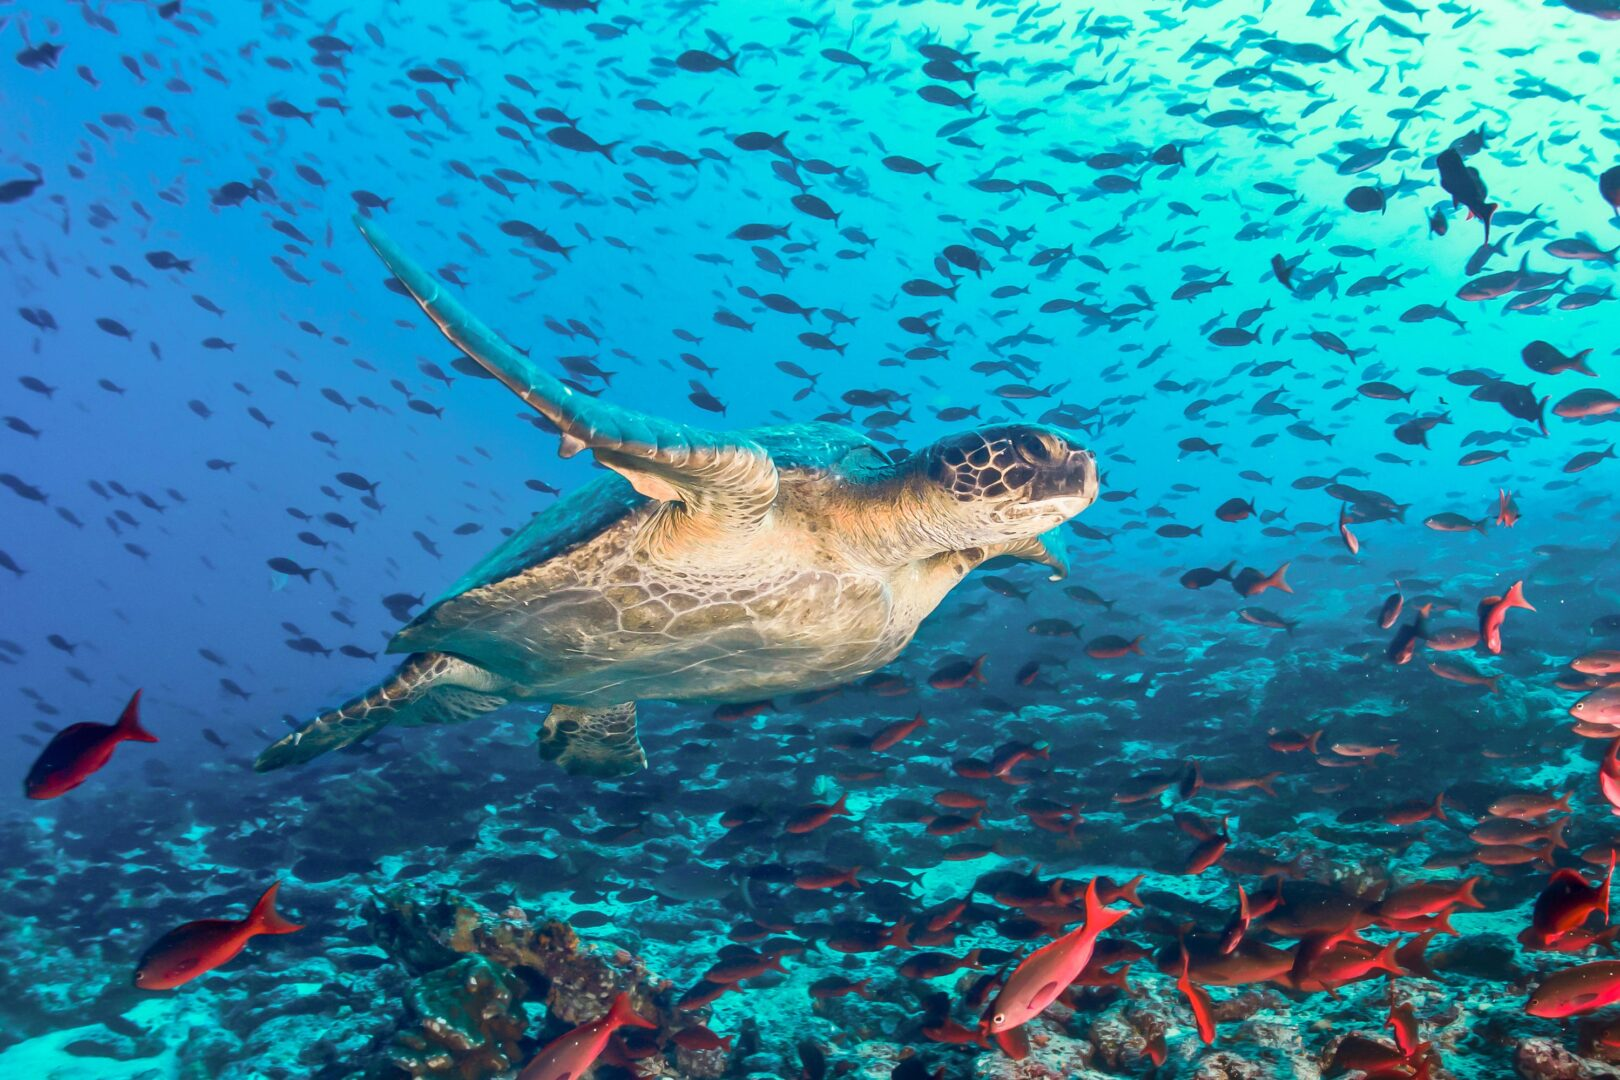 See amazing wildlife, like this sea turtle, on your Galapagos Islands cruise